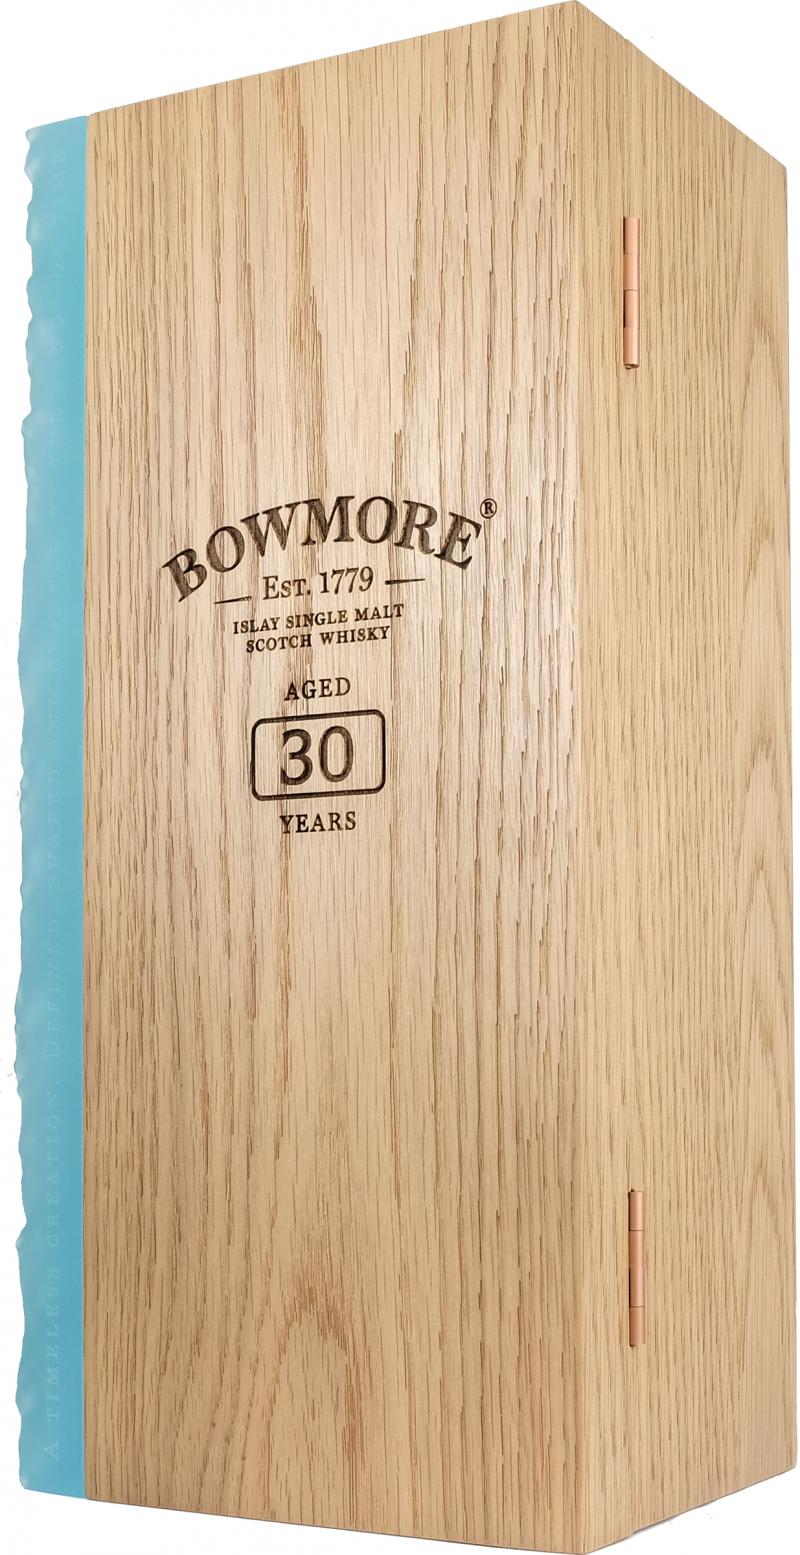 Bowmore 30-year-old